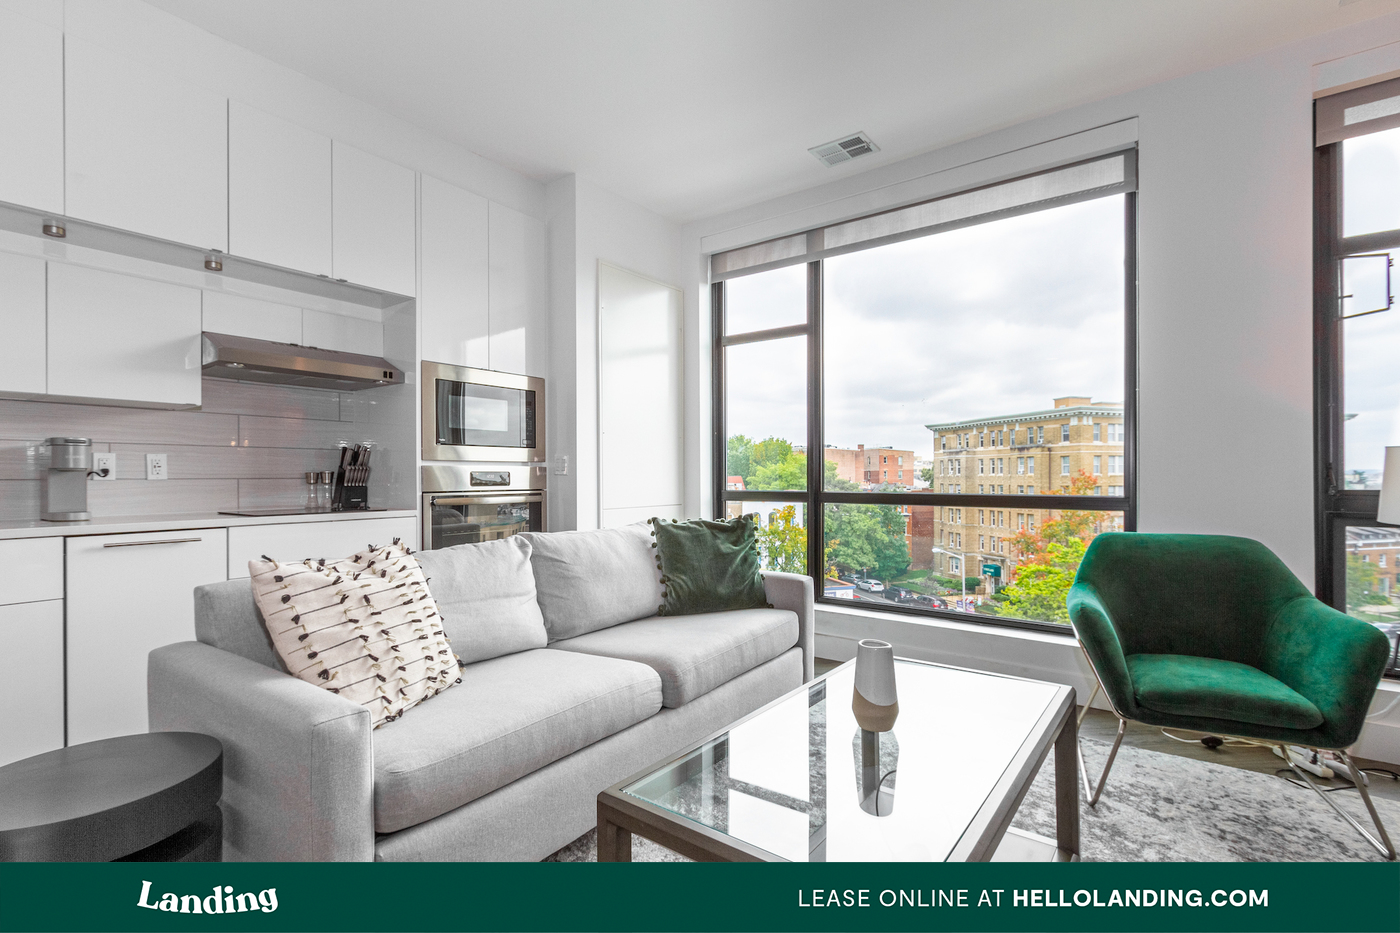 Landing - AdMo Heights for rent